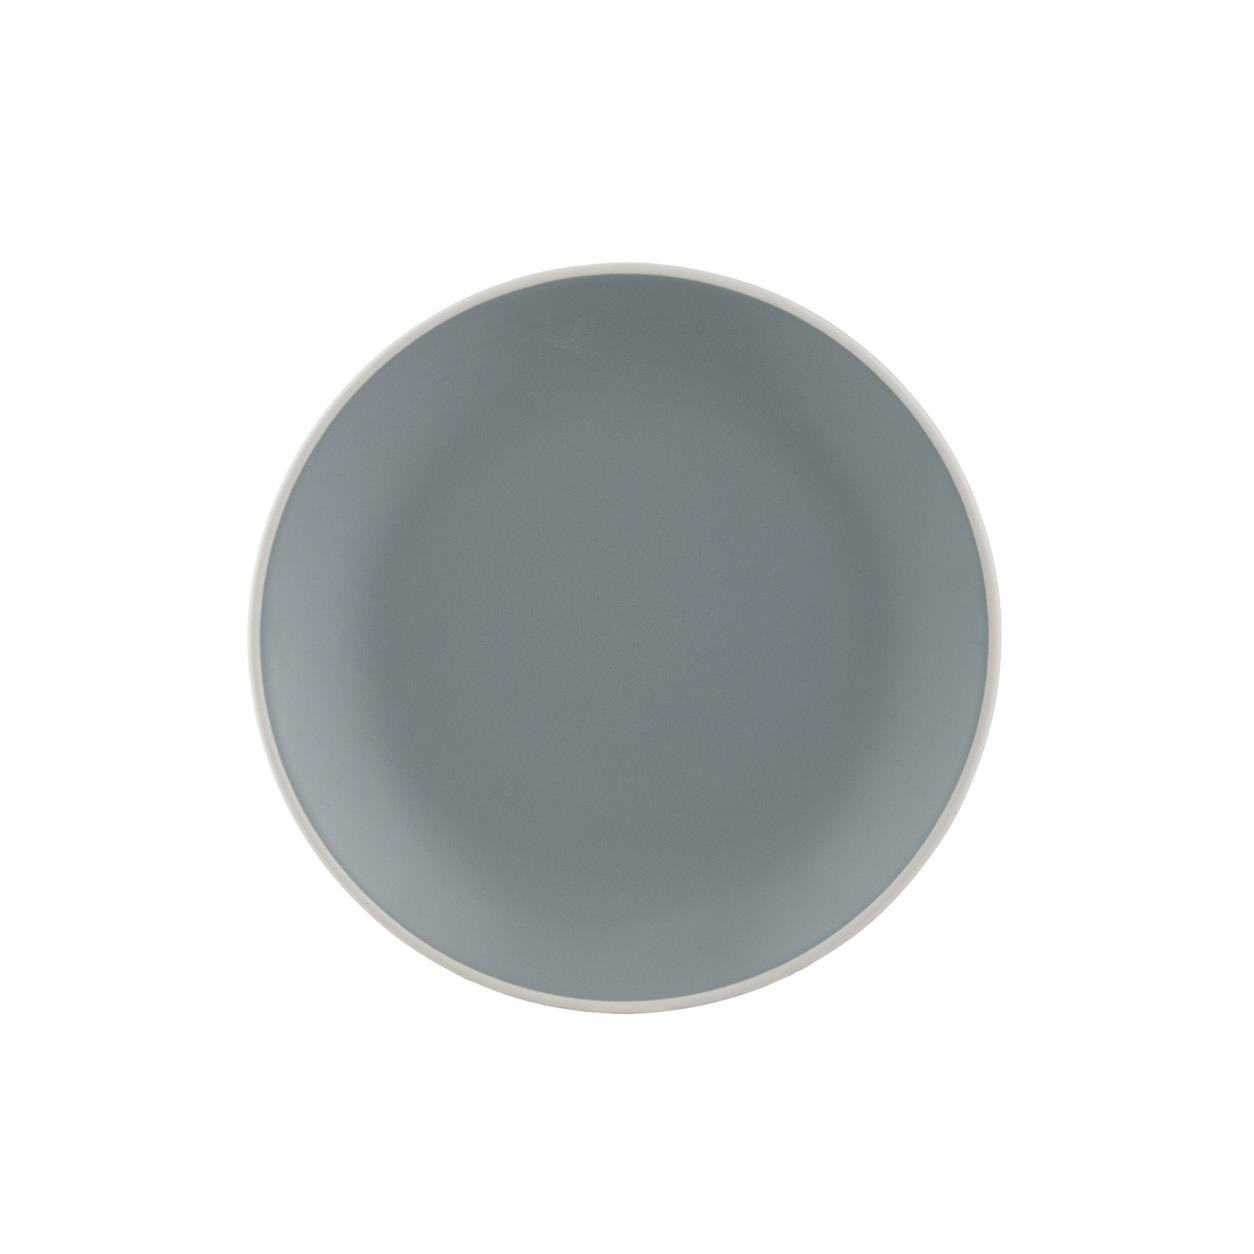 CLASSIC COLLECTION GREY SIDE PLATE